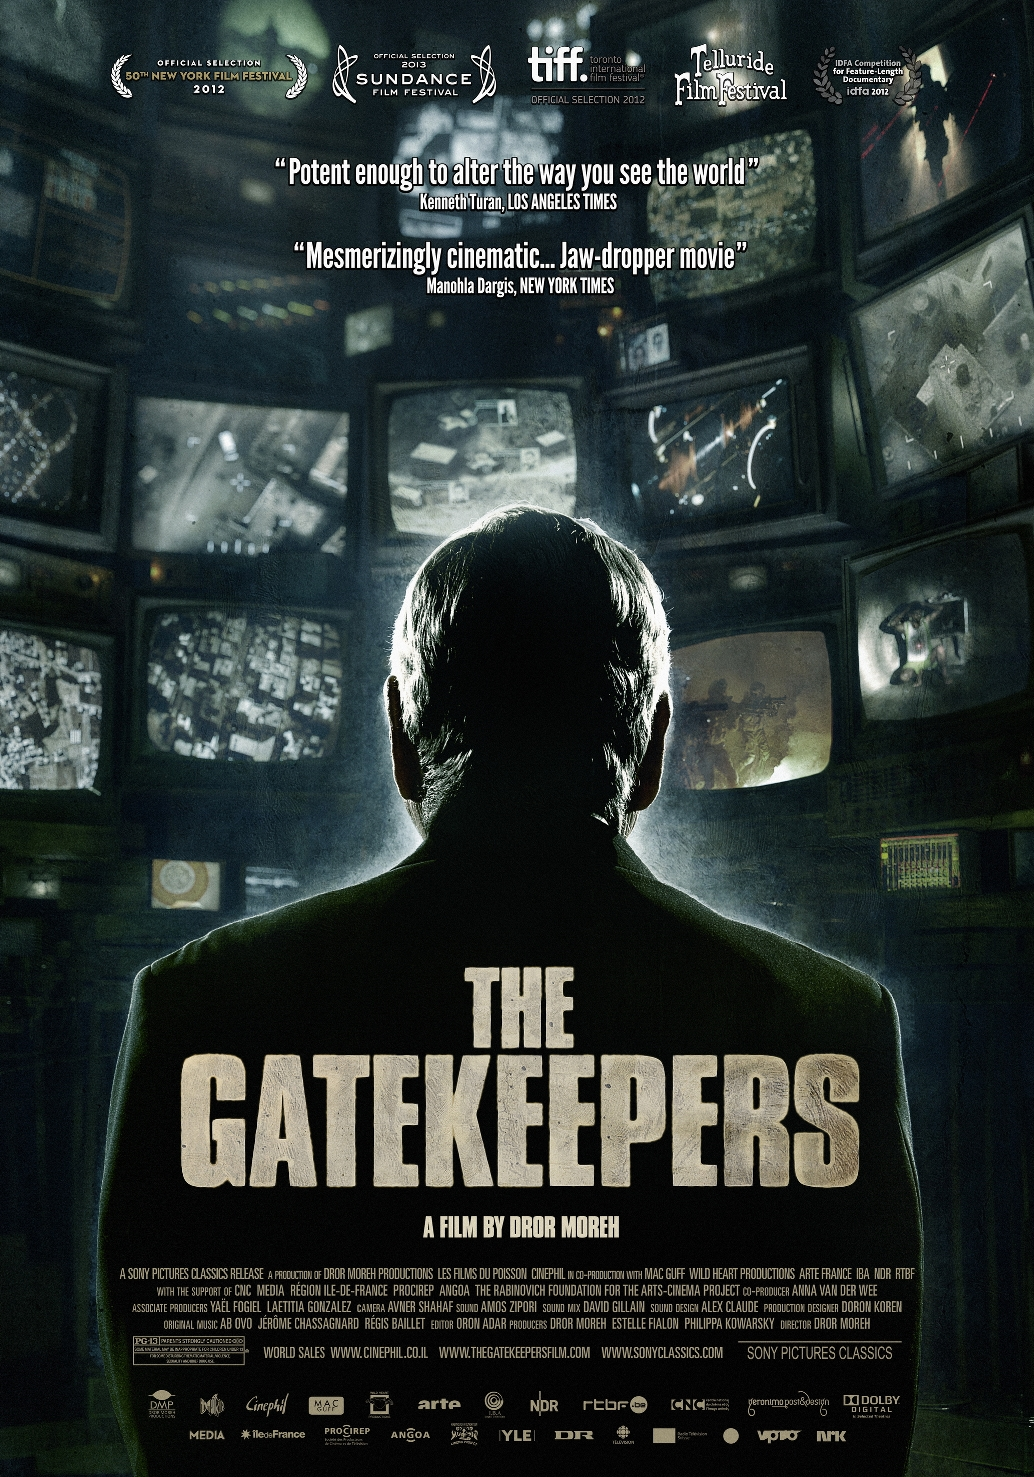 Cartel promocional de The Gatekeepers